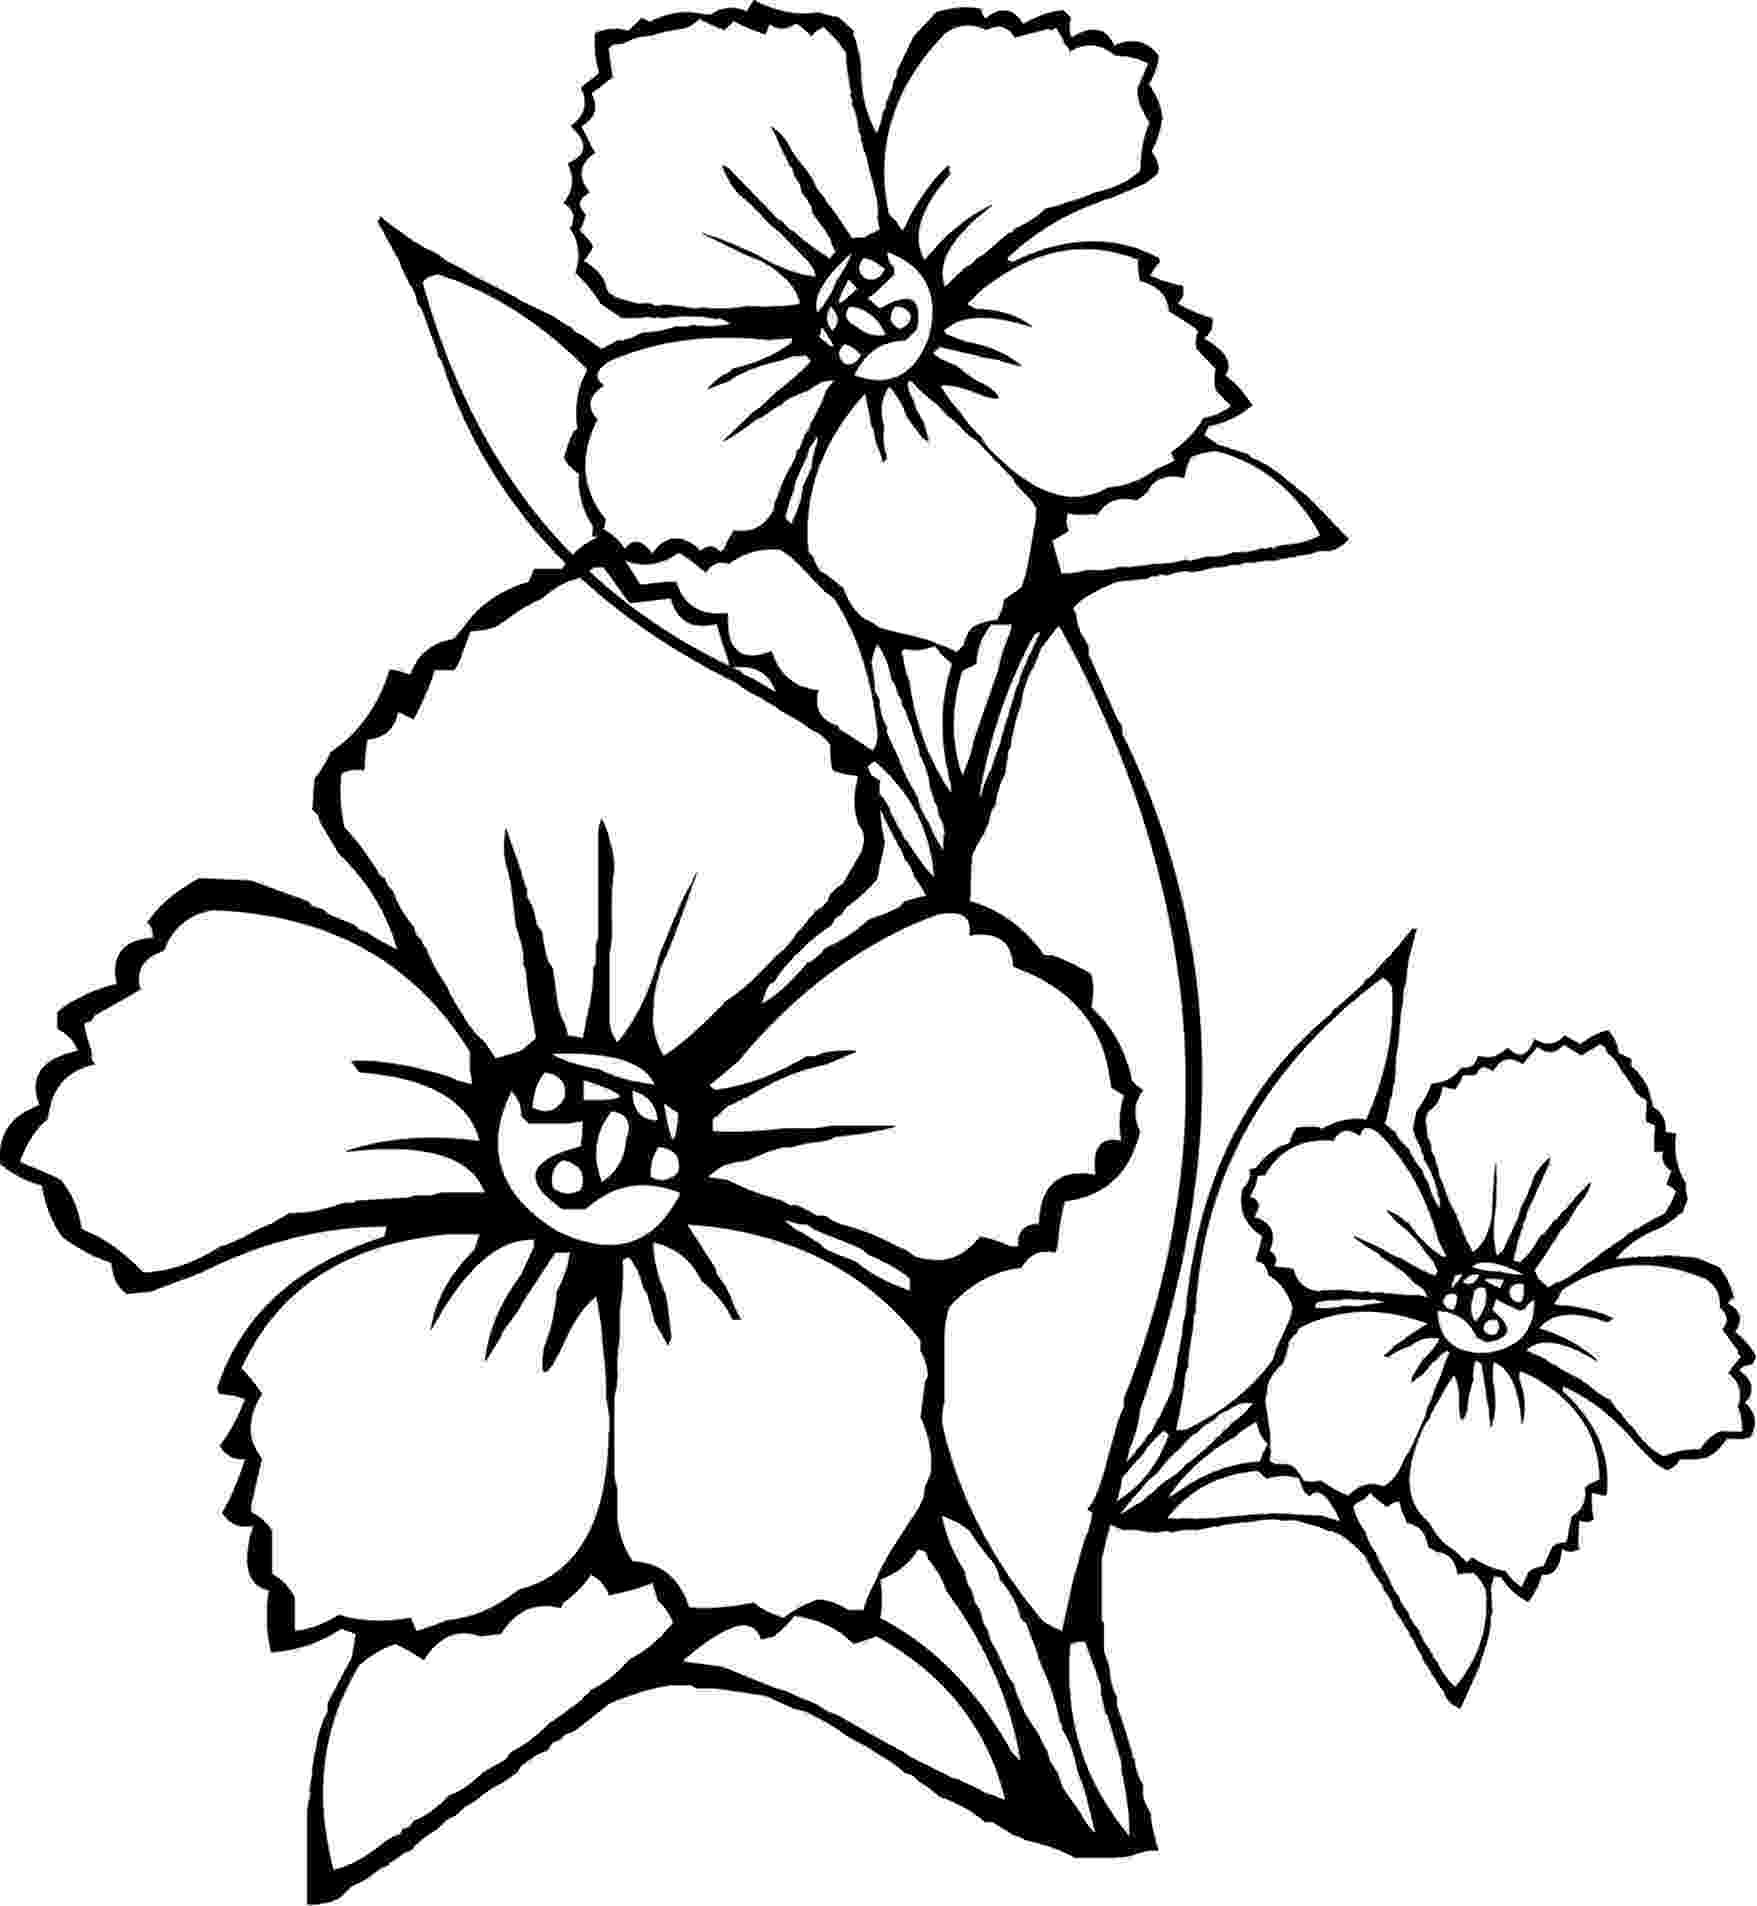 flowers colouring free printable flower coloring pages for kids best colouring flowers 1 1